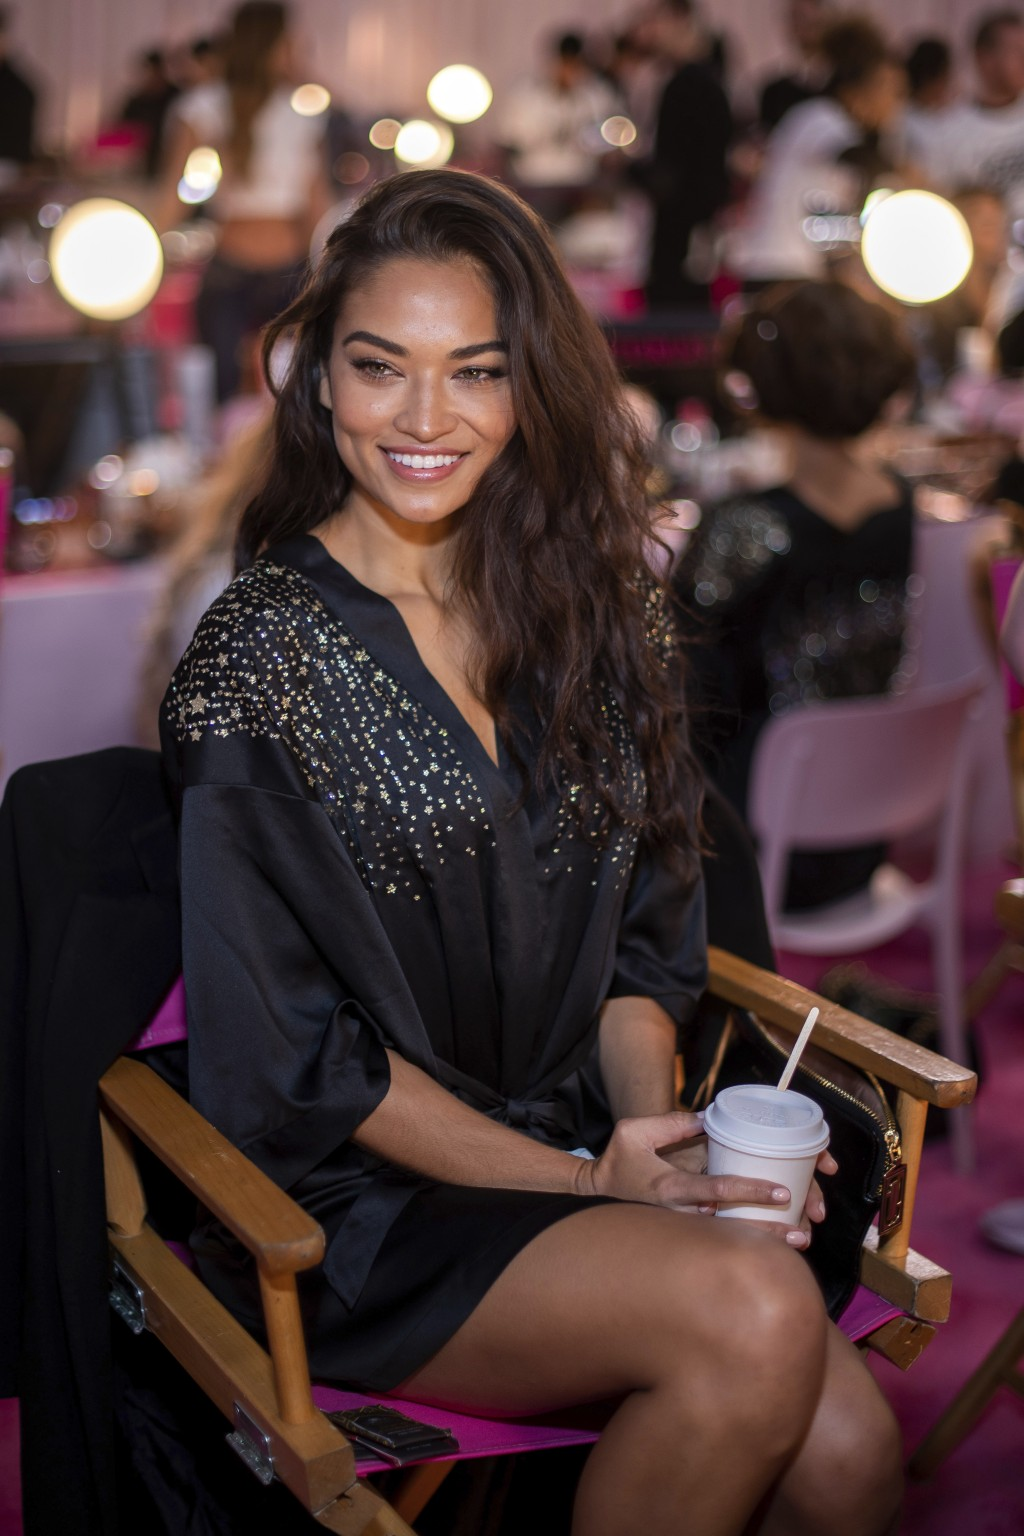 Shanina Shaik appears backstage during hair and makeup at the 2018 Victoria's Secret Fashion Show at Pier 94 on Thursday, Nov. 8, 2018, in New York. (